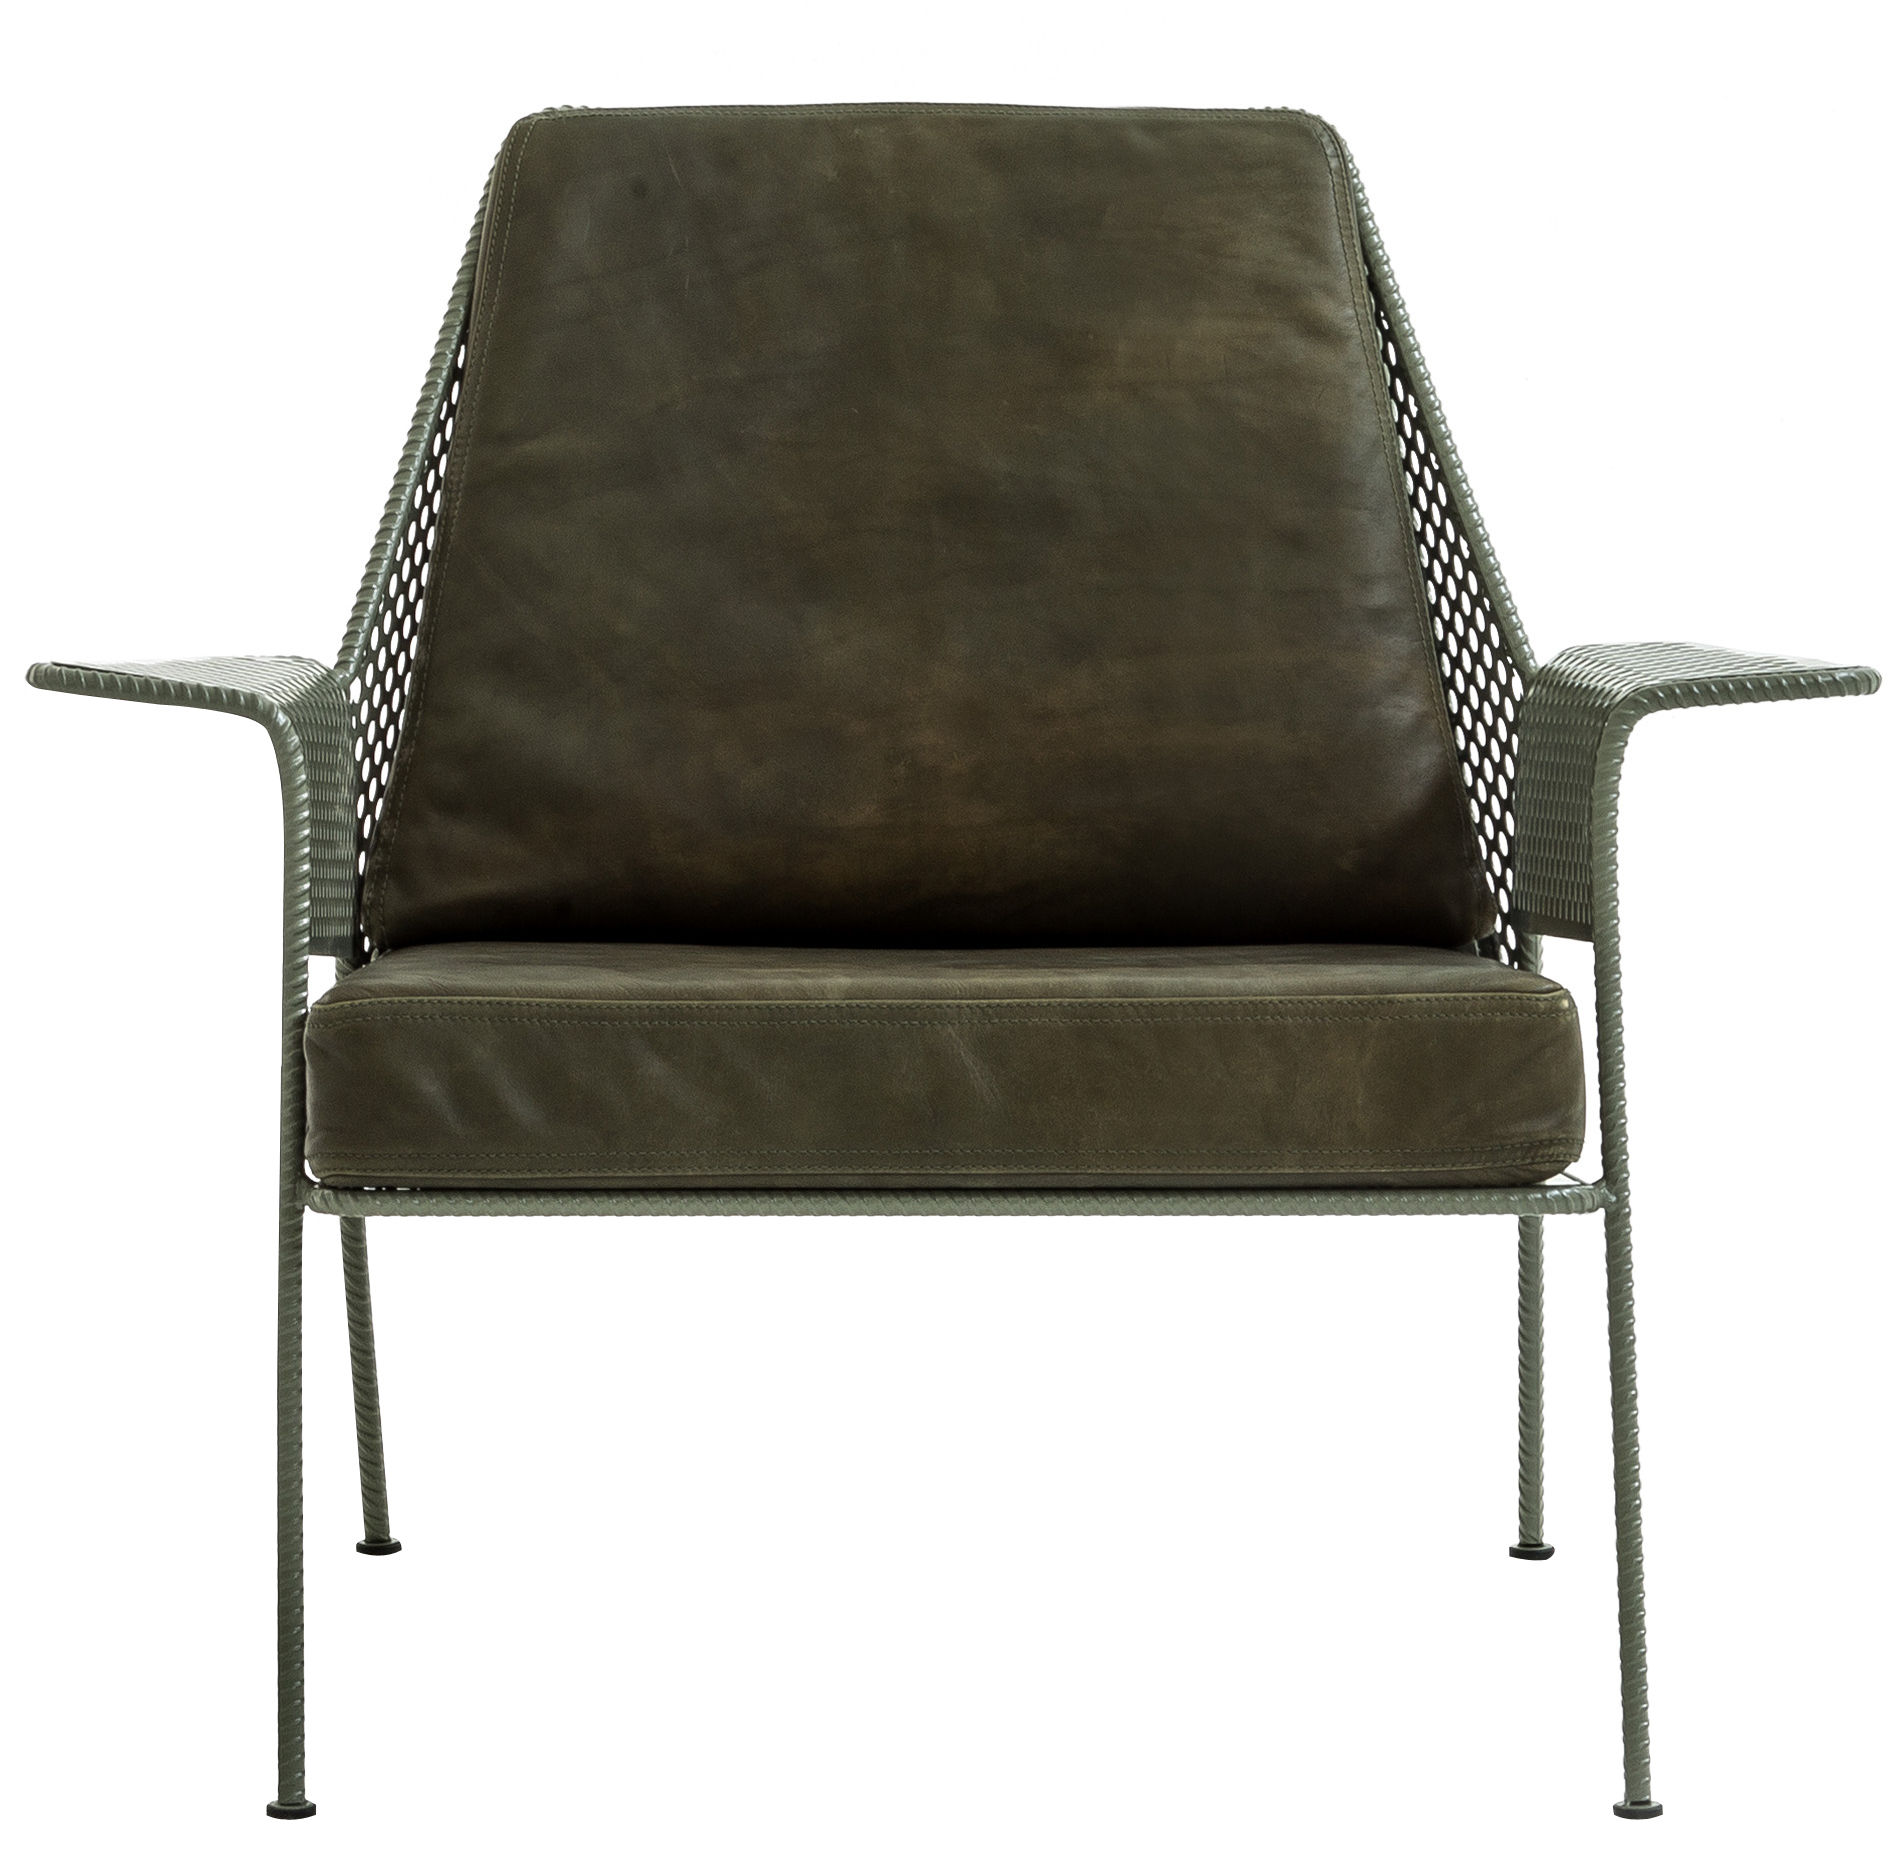 Furniture - Armchairs - Work is over Padded armchair by Diesel with Moroso - Khaki - Leather, Polyester fiber, Polyurethane foam, Varnished steel